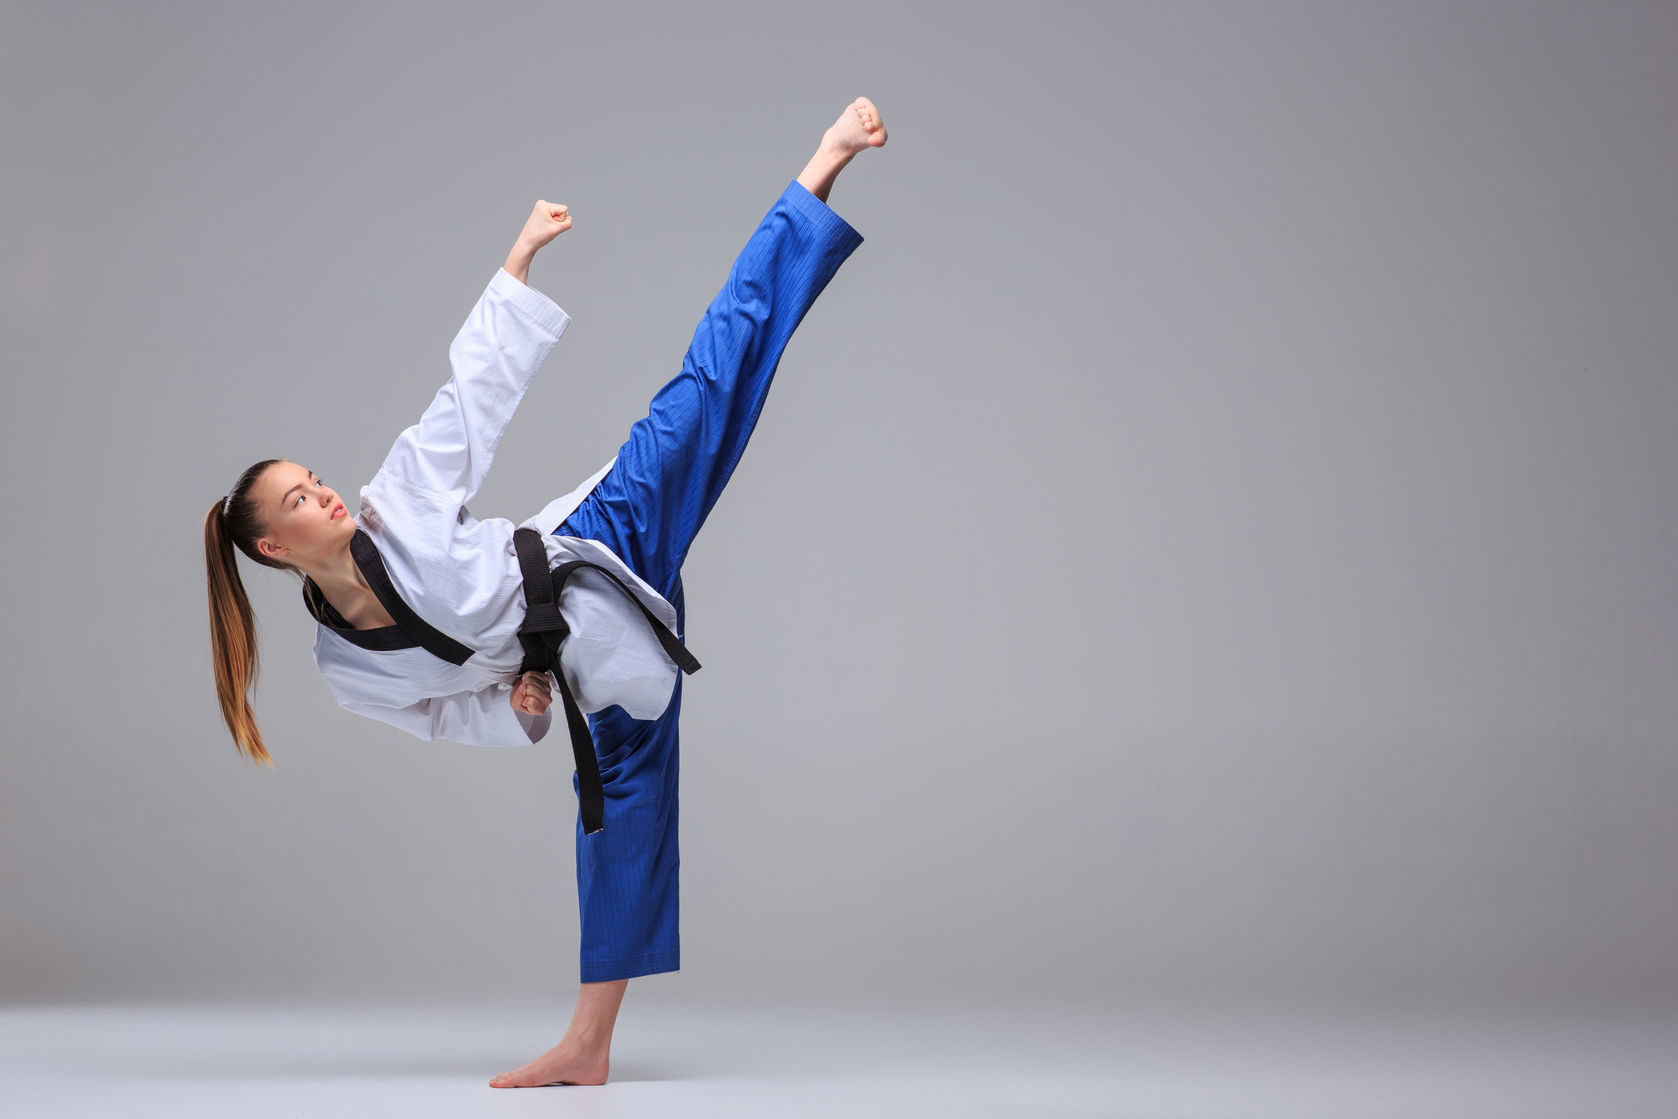 Poomsae (forms) high sidekick